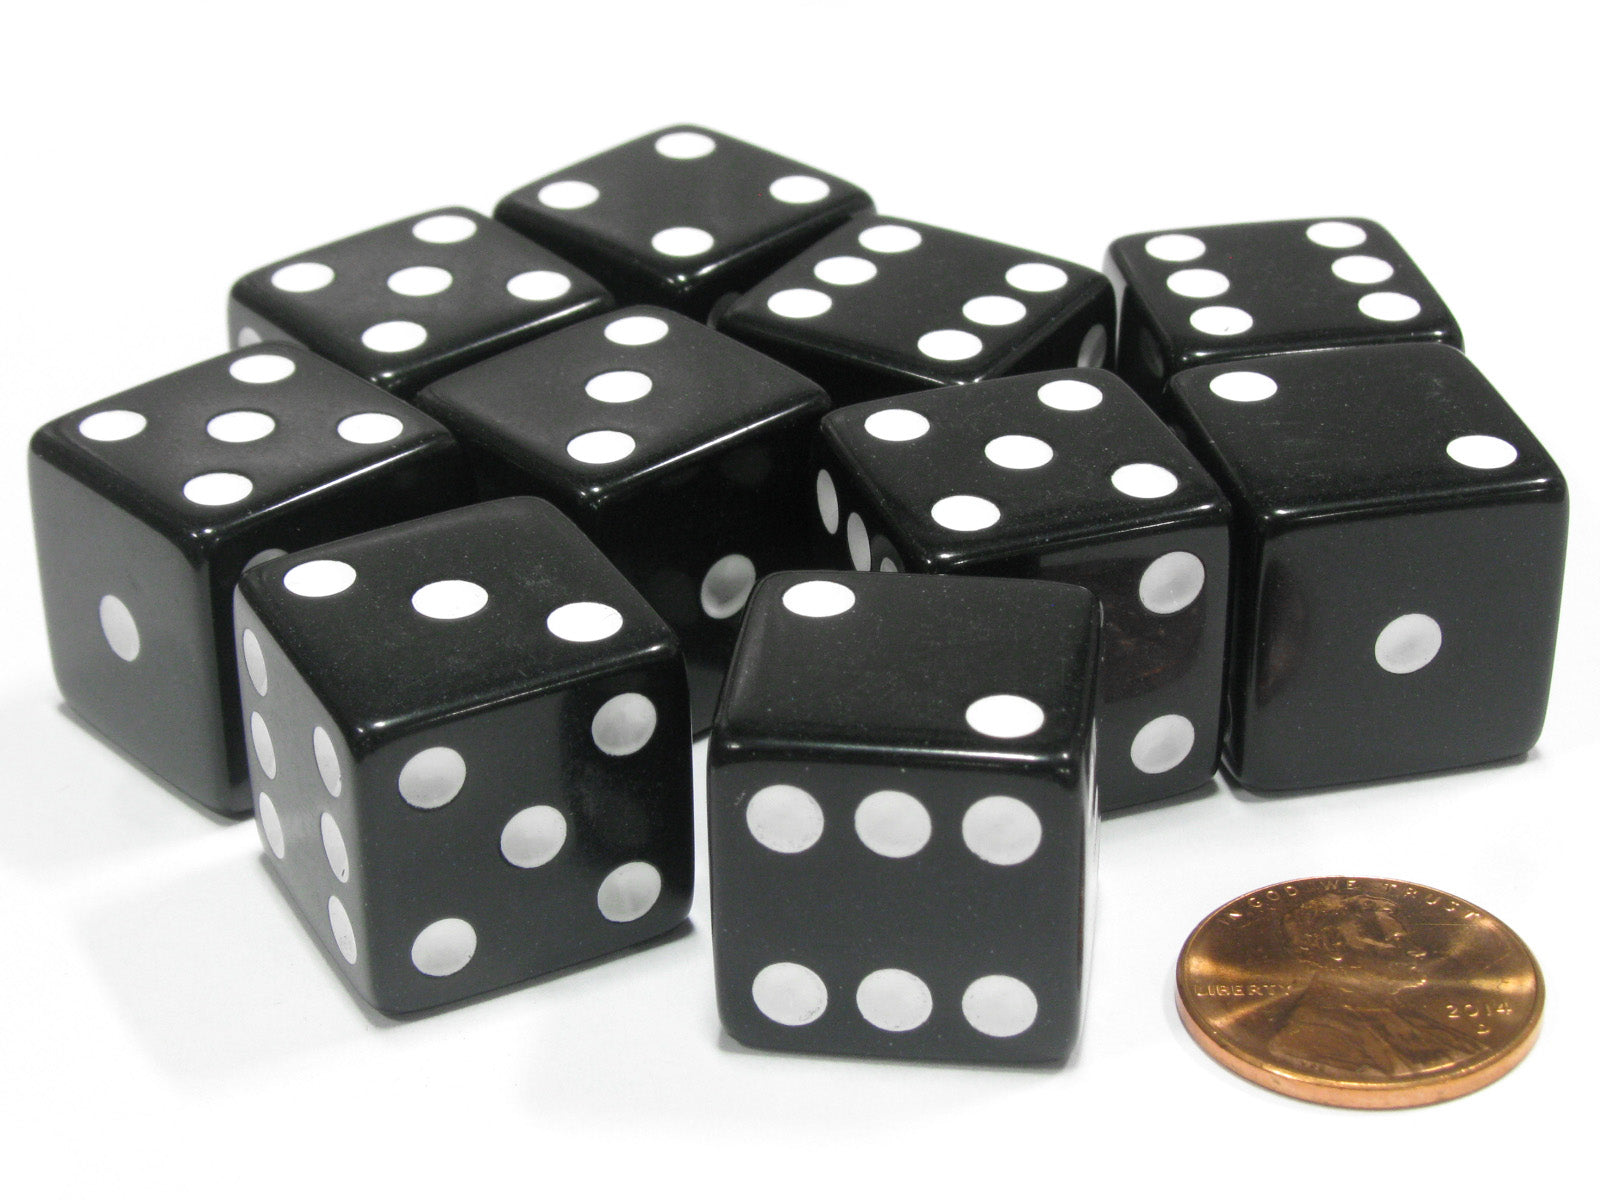 Set of 10 Large Six Sided Square Opaque 19mm D6 Dice Black with White Pip Die